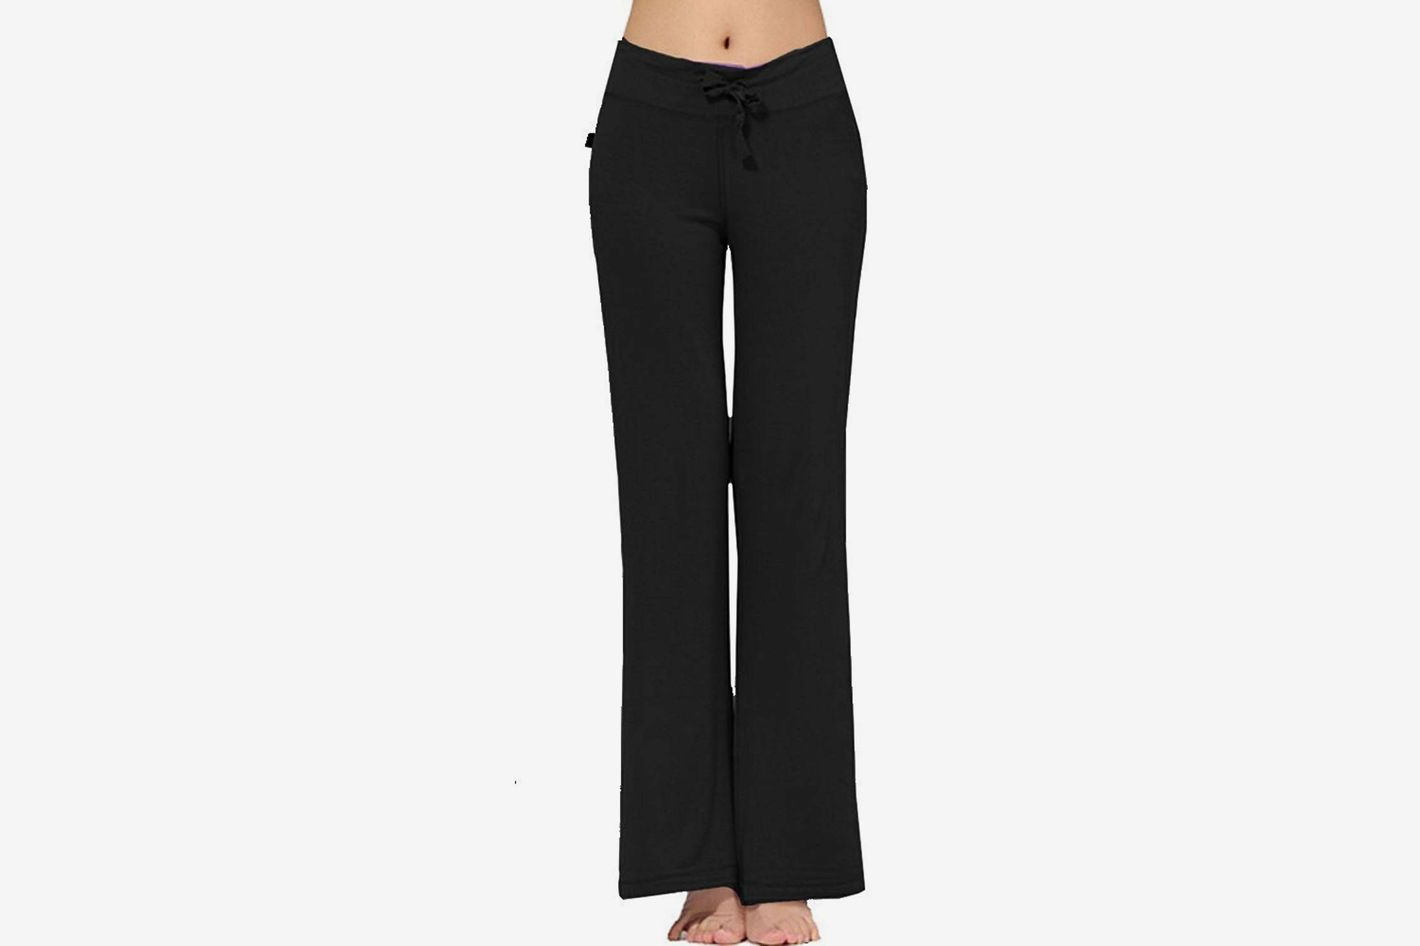 TownCat Women's Modal Comfy Straight Yoga Pants